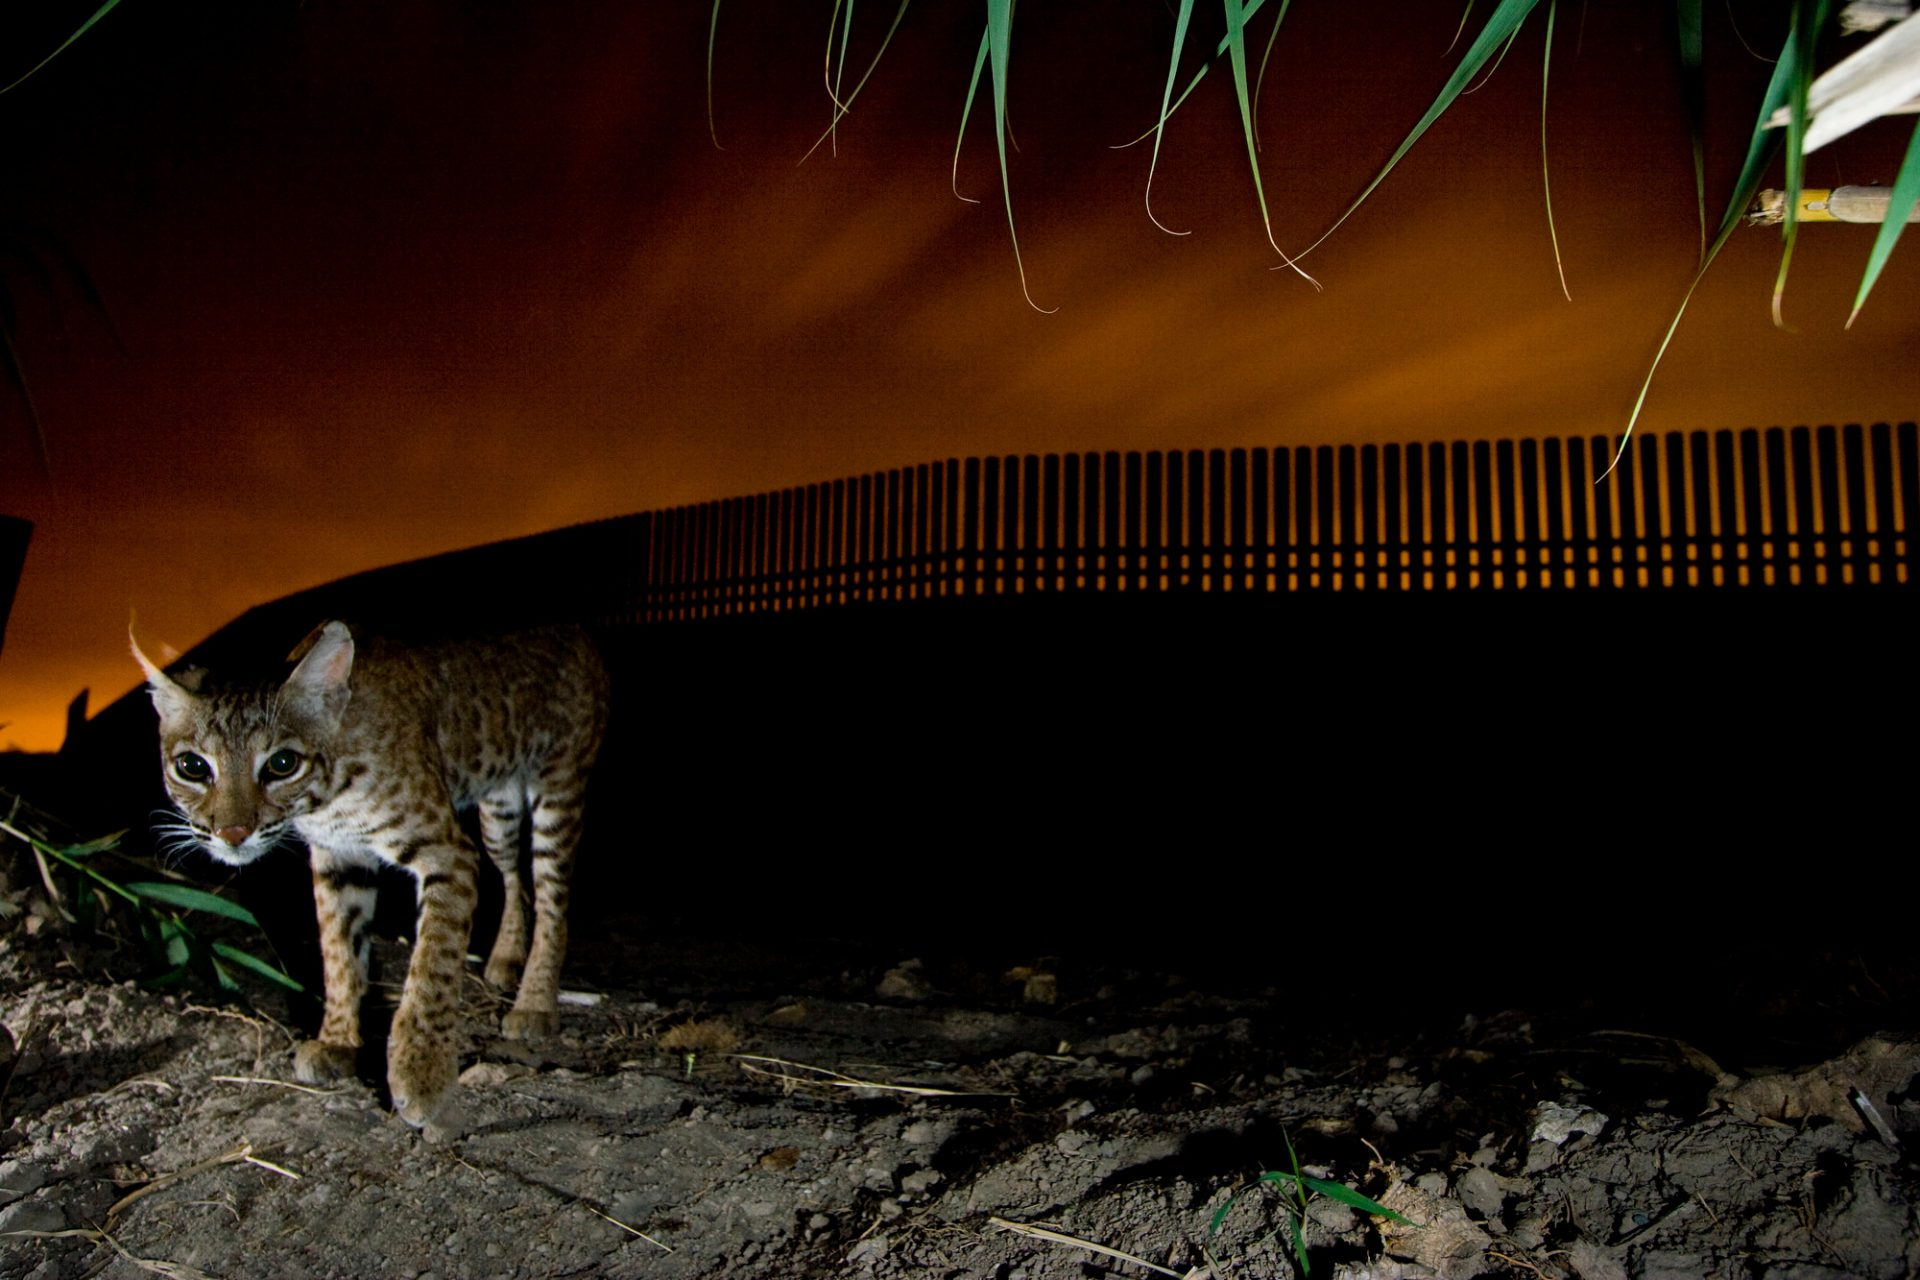 A bobcat (Lynx rufus) photographed by a camera trap along the Texas-Mexico border in Texas. Cutting in many places through the last of the habitat left along the lower Rio Grande river, the wall is a huge impediment to the movement of wildlife species that can't fly over it. Photograph by Joel Sartore with Mitch Sternberg, Jennifer Lowry, and Naghma Malik, all U.S. Fish and Wildlife Service.